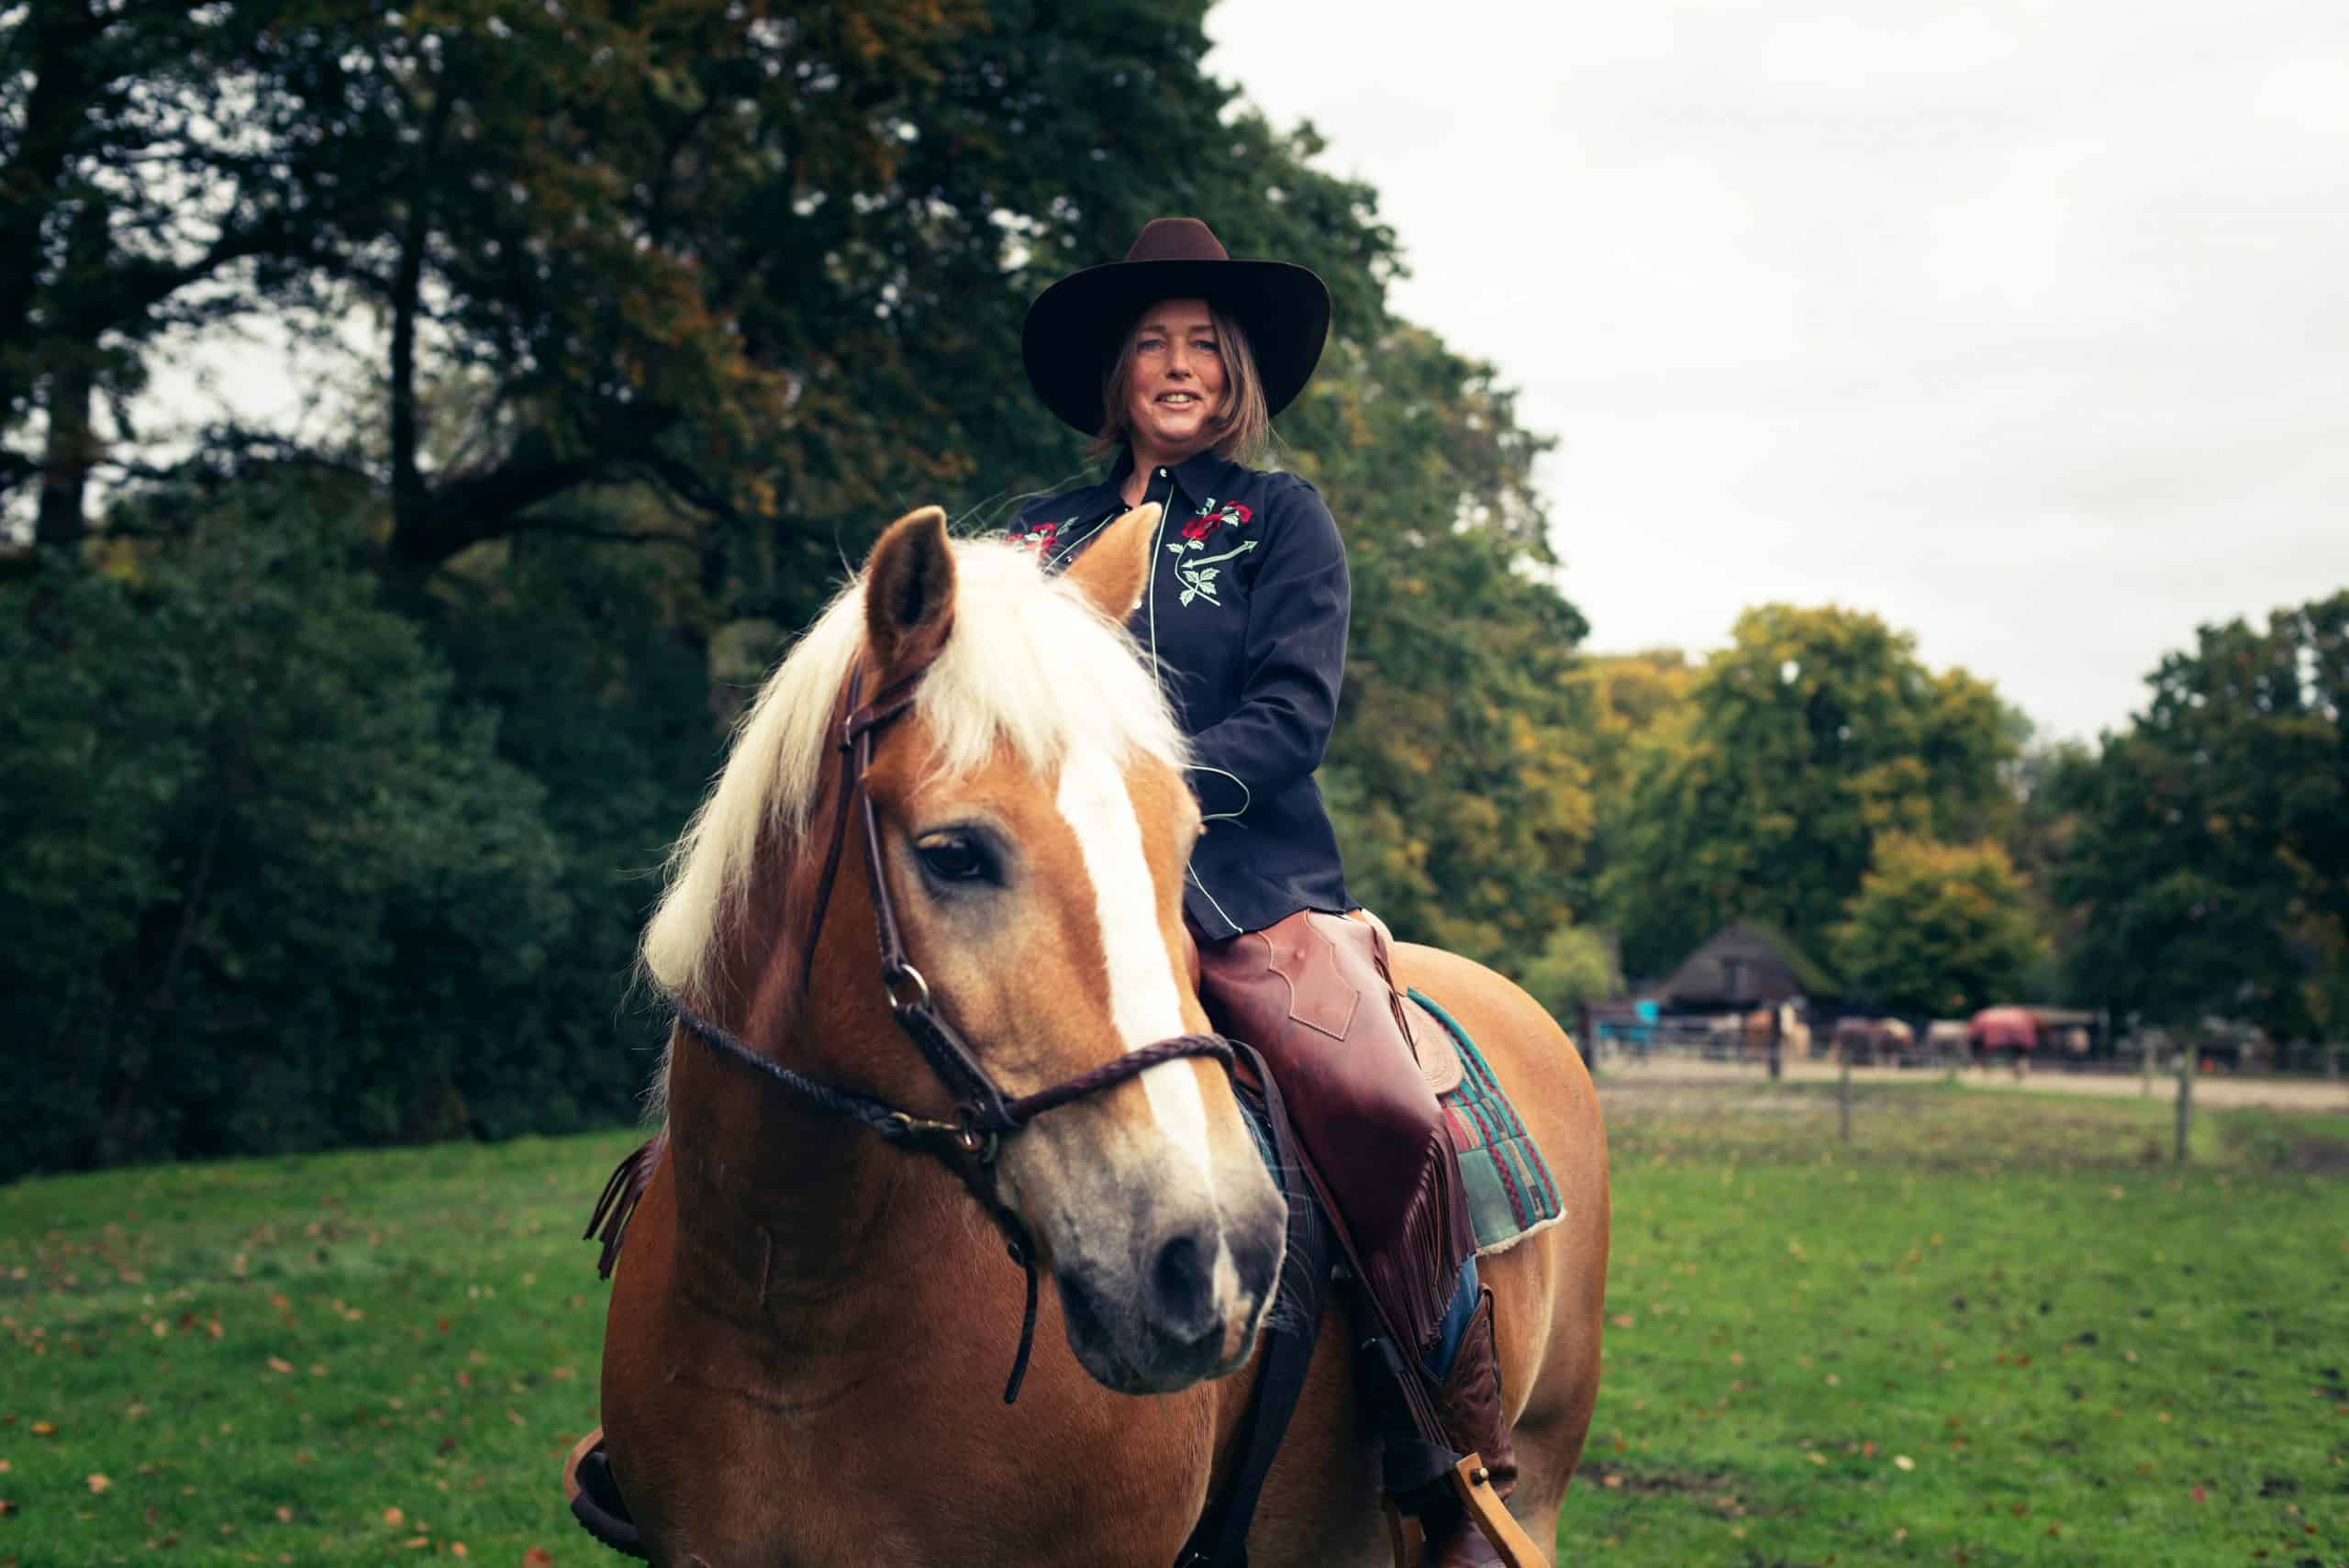 Smiling western style woman horse riding in countryside.